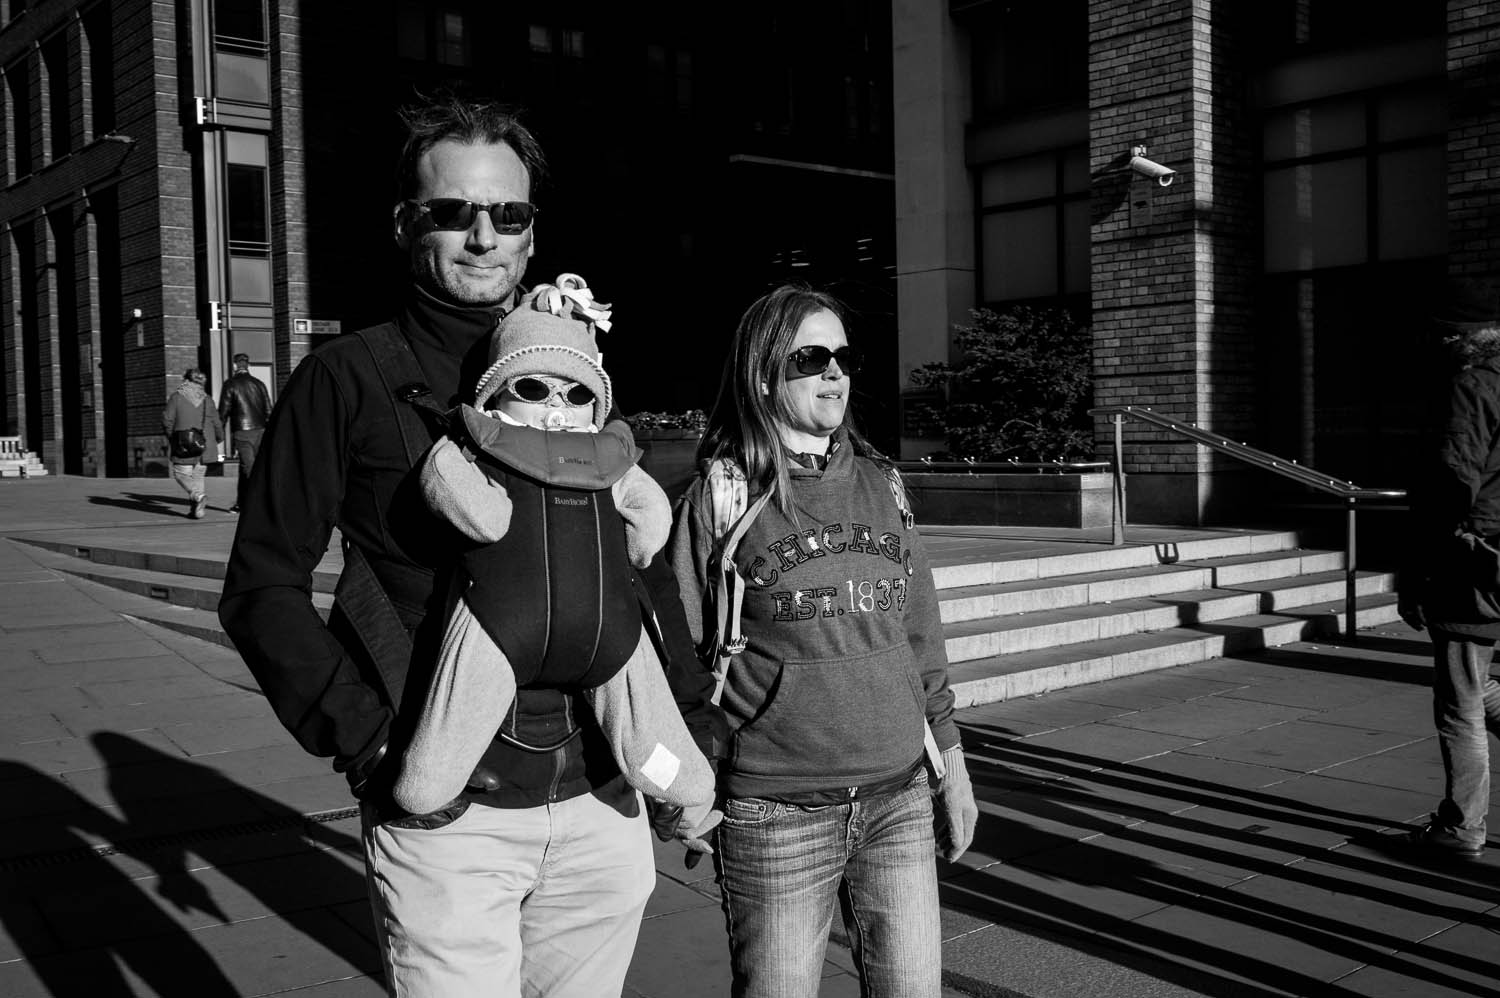 A couple with a baby carrier walk through London, all three wearing sunglasses